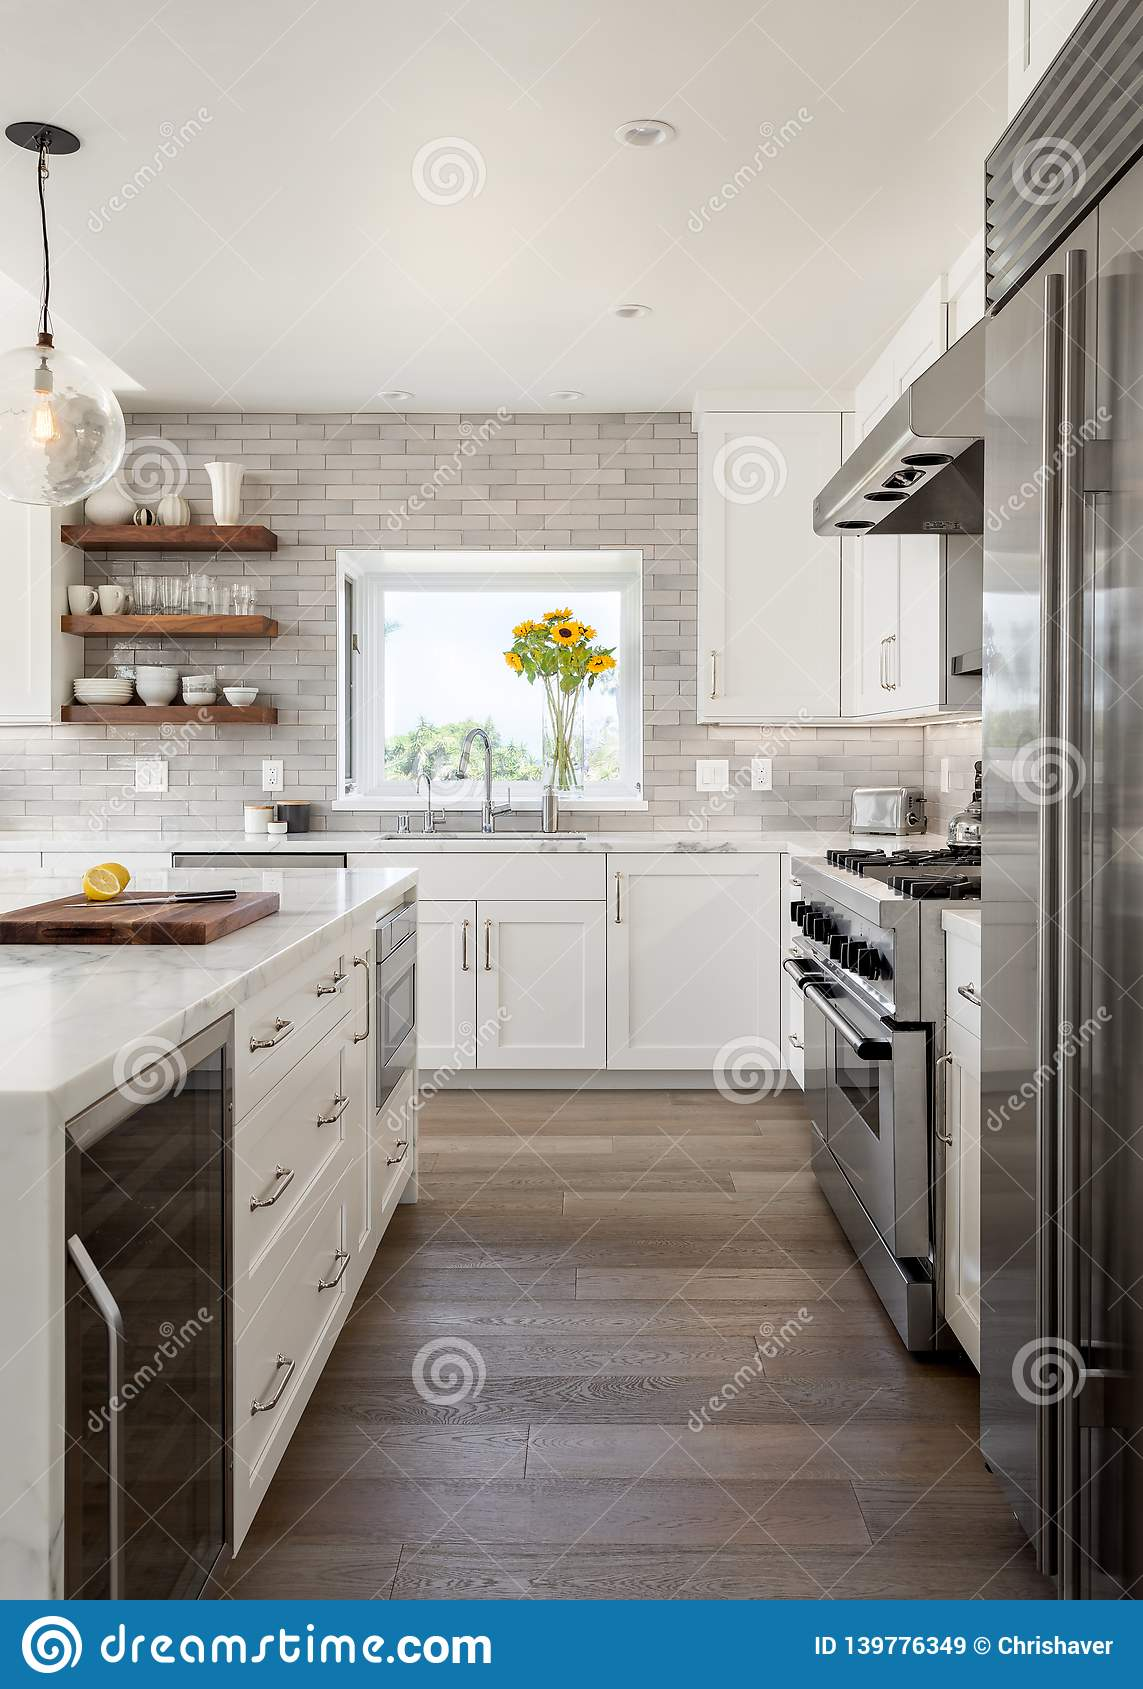 Modern Farmhouse Kitchen Design Remodel Vertical Orientation Editorial Stock Image Image Of Living Modern 139776349